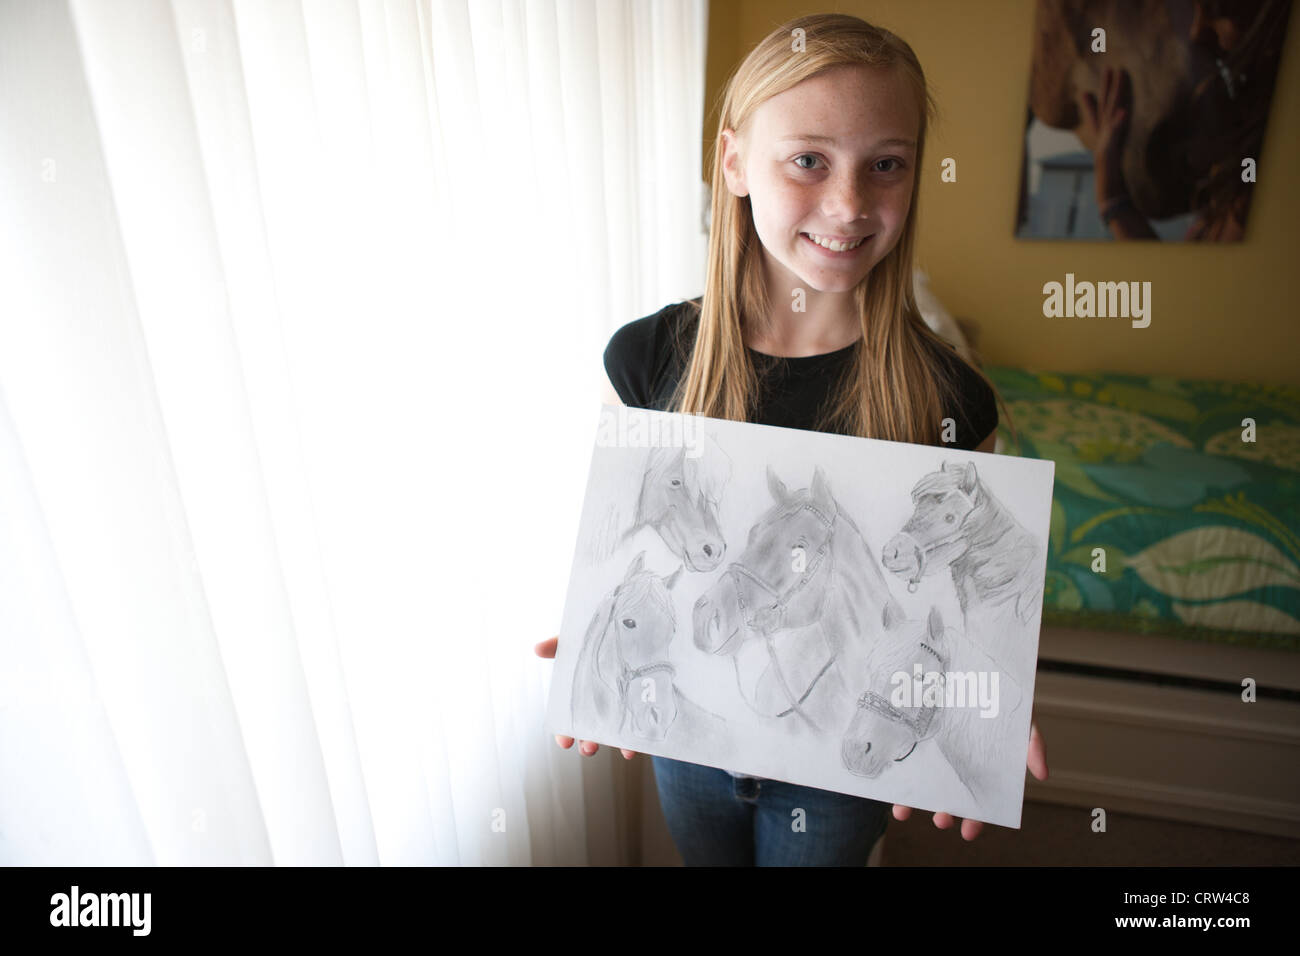 Thirteen year old girl holds her pencil drawings of horses and smiles stock photo 49110104 alamy for Disegni di cavalli a matita